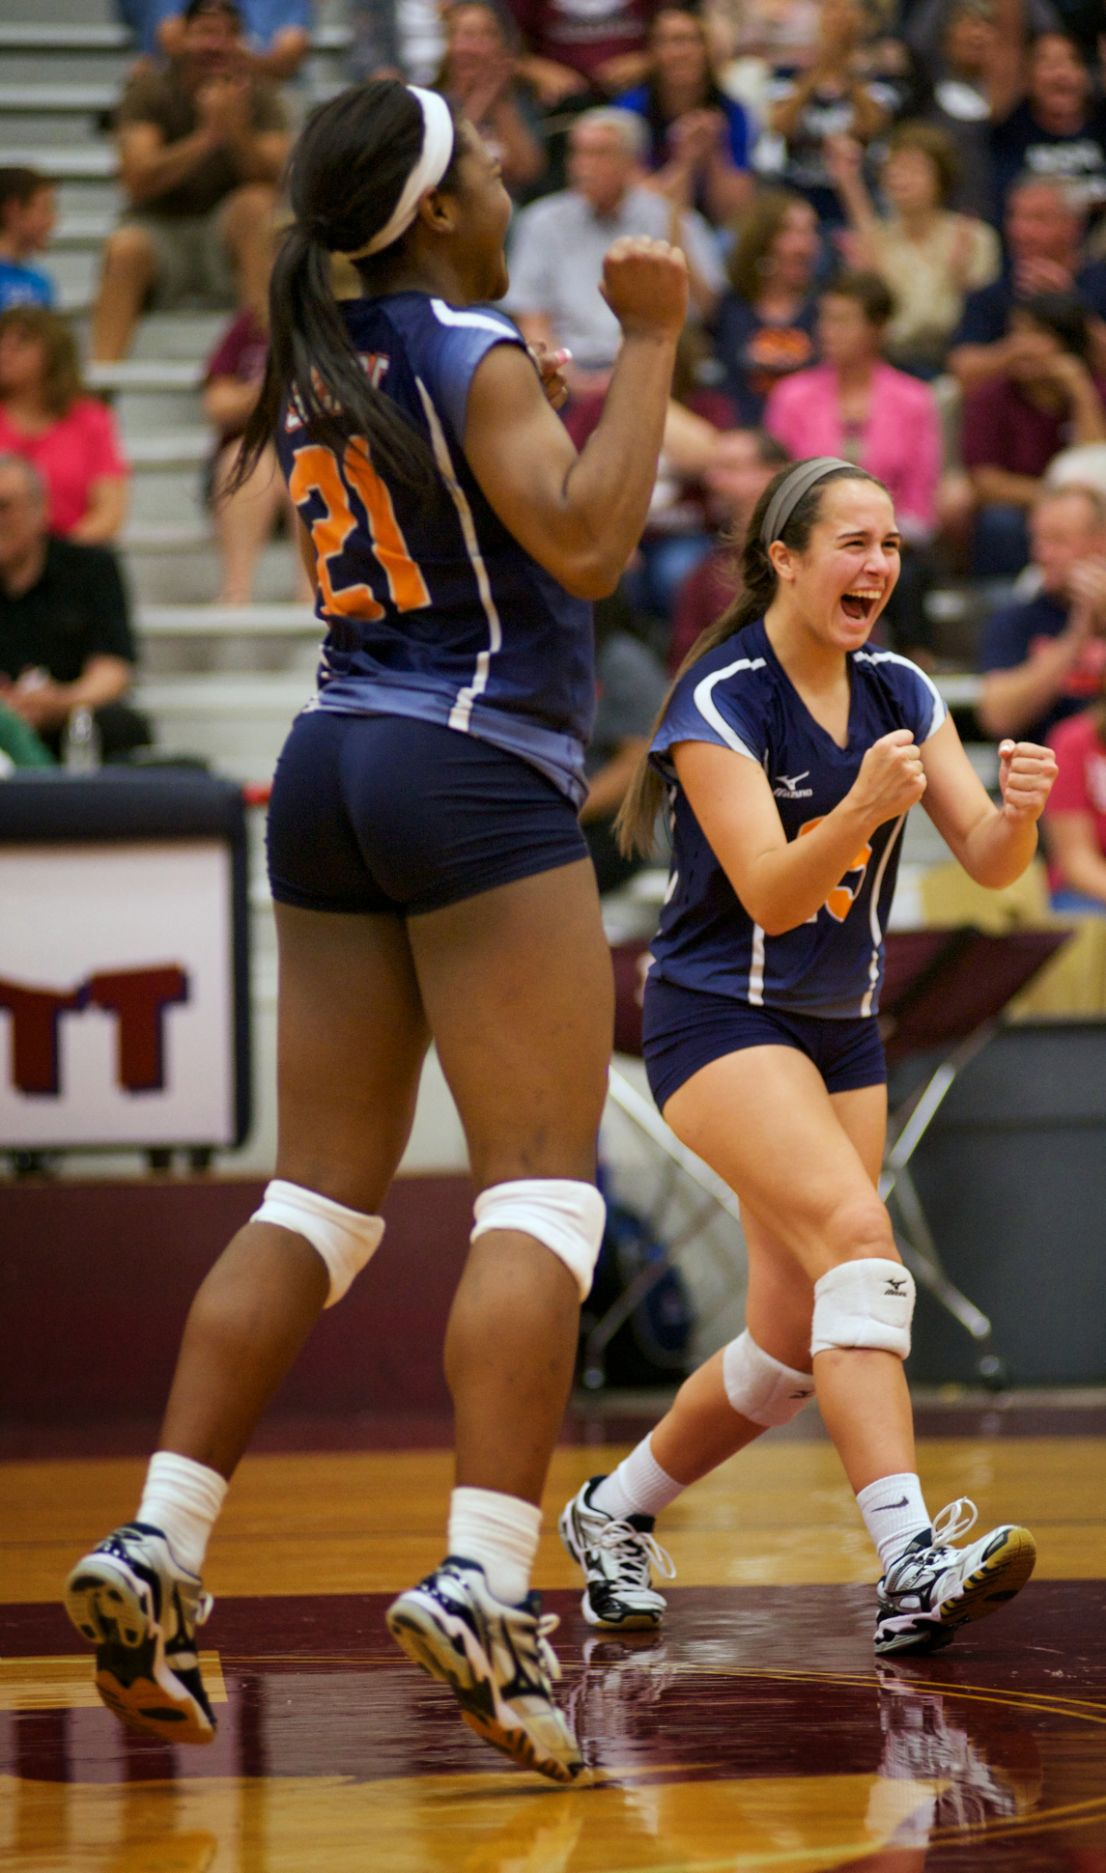 SACHSE VOLLEYBALL CASEY ENNA AND MEAGHAN JONES 9 16